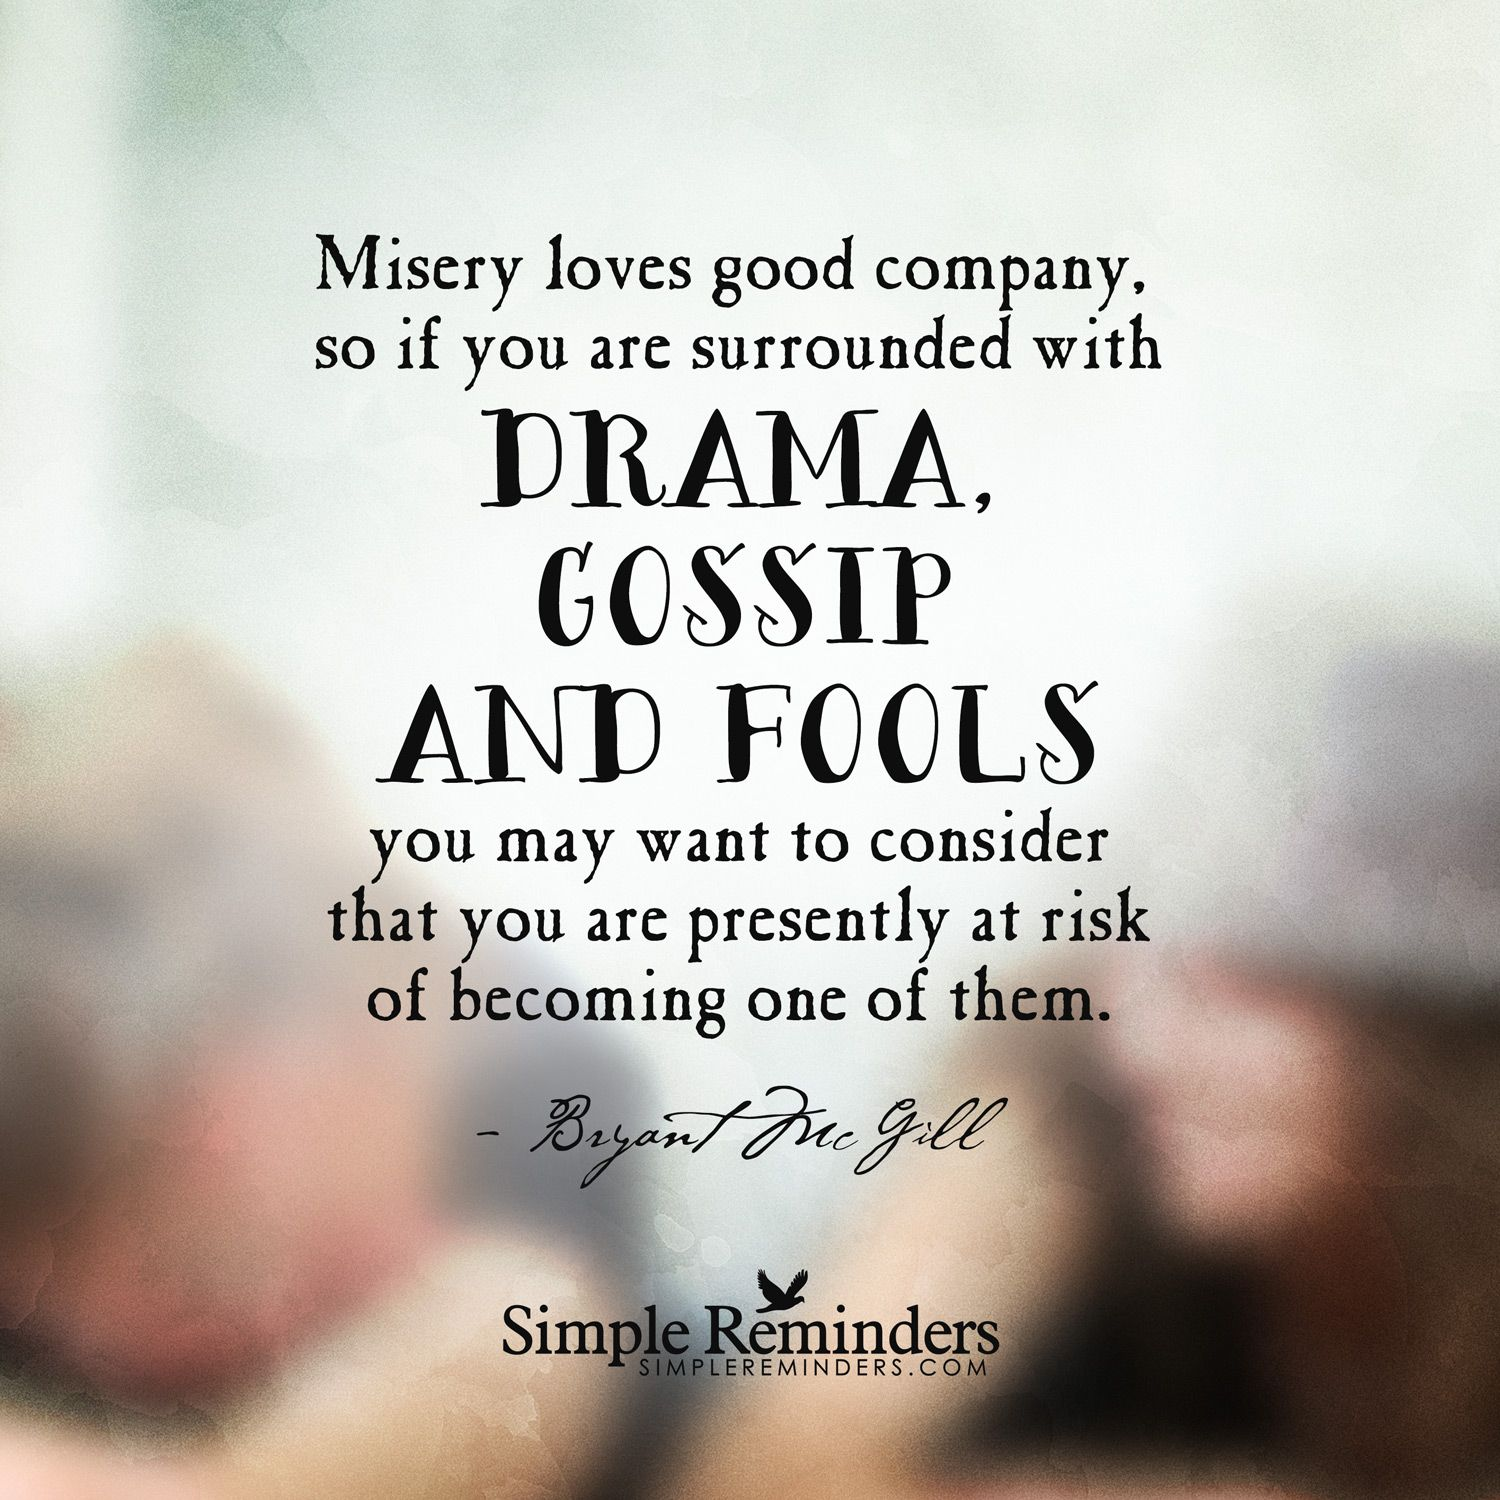 Misery Loves Company Quotes Captivating Misery Loves Good Company So If You Are Surrounded With Drama Gos . Review